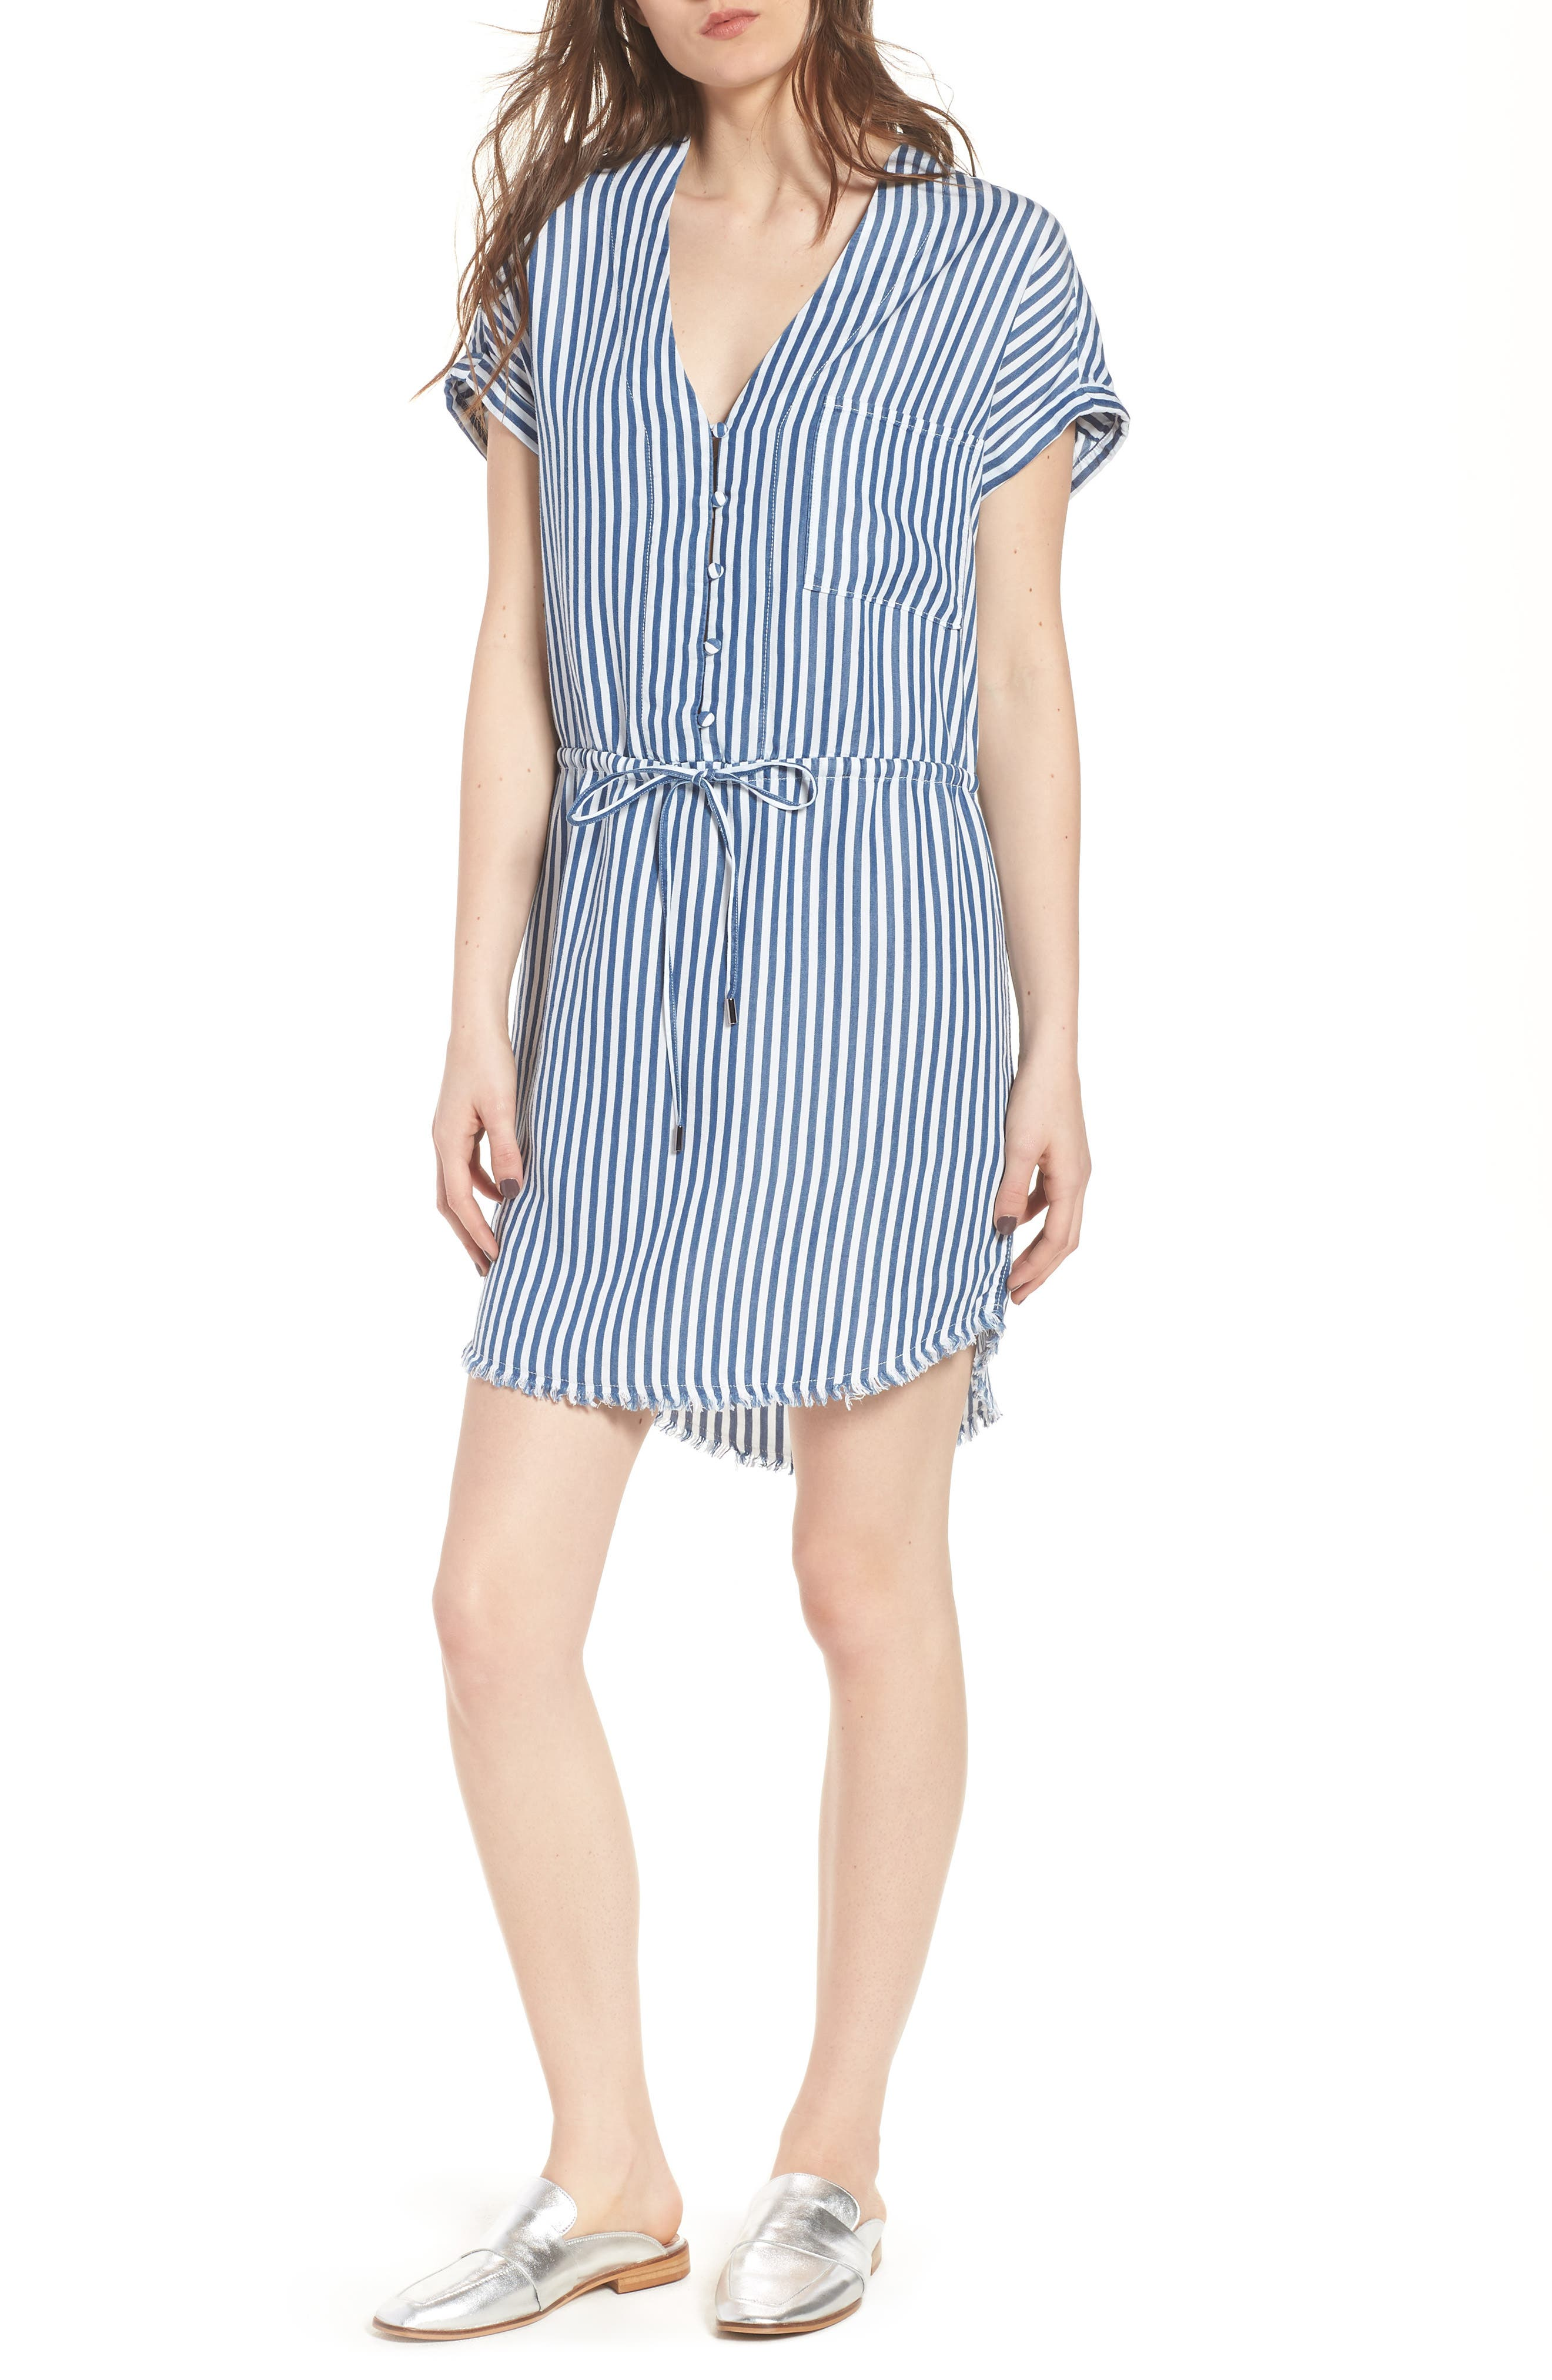 Haidee Stripe Shift Dress,                             Main thumbnail 1, color,                             White/ Blue Bell Stripe